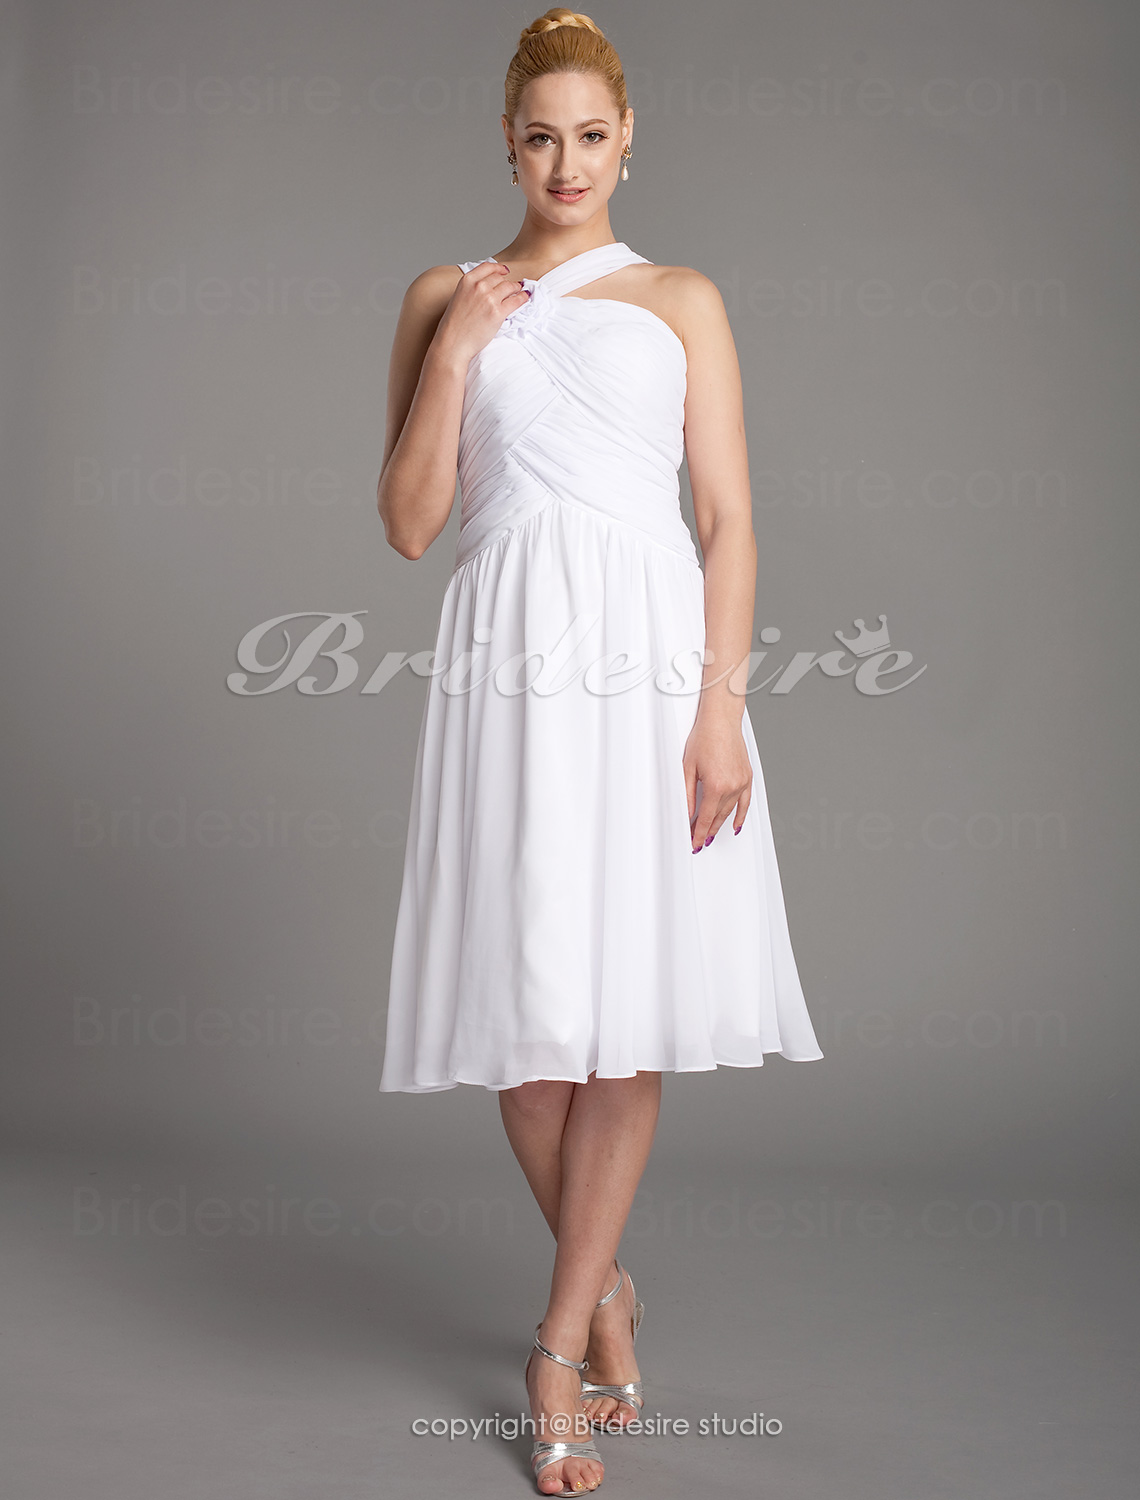 A-line Chiffon Knee-length Straps Mother of the Bride Dress